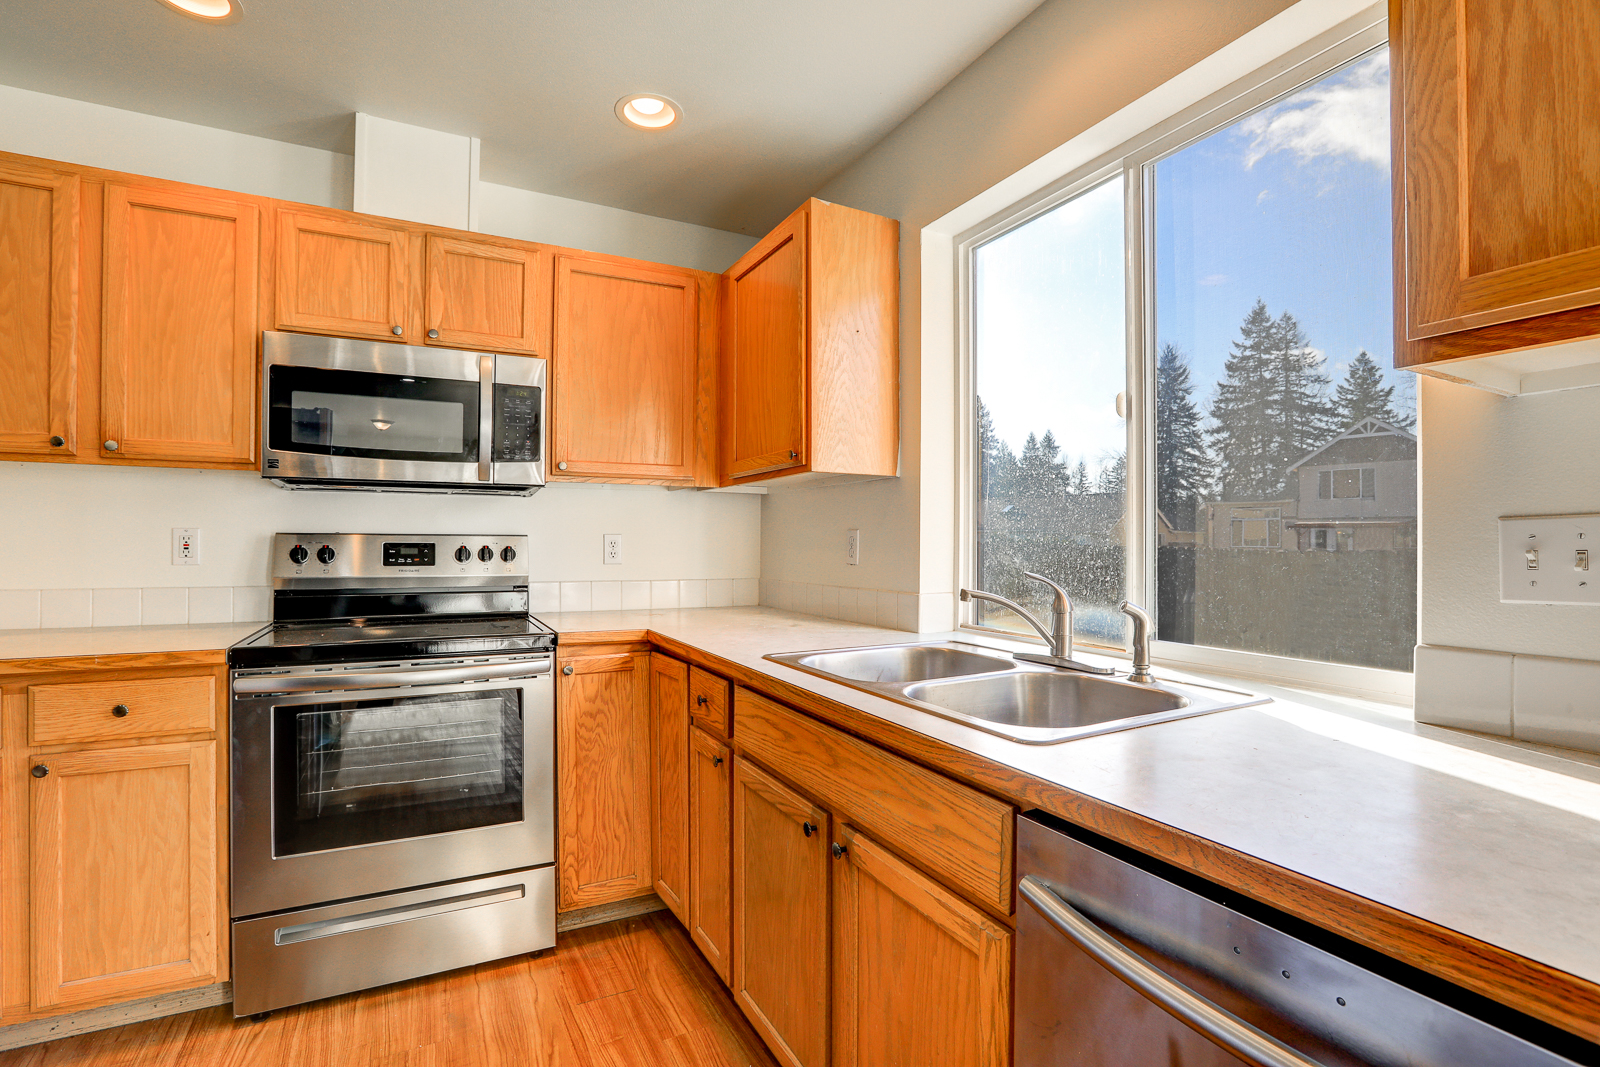 Great kitchen with view of the back yard